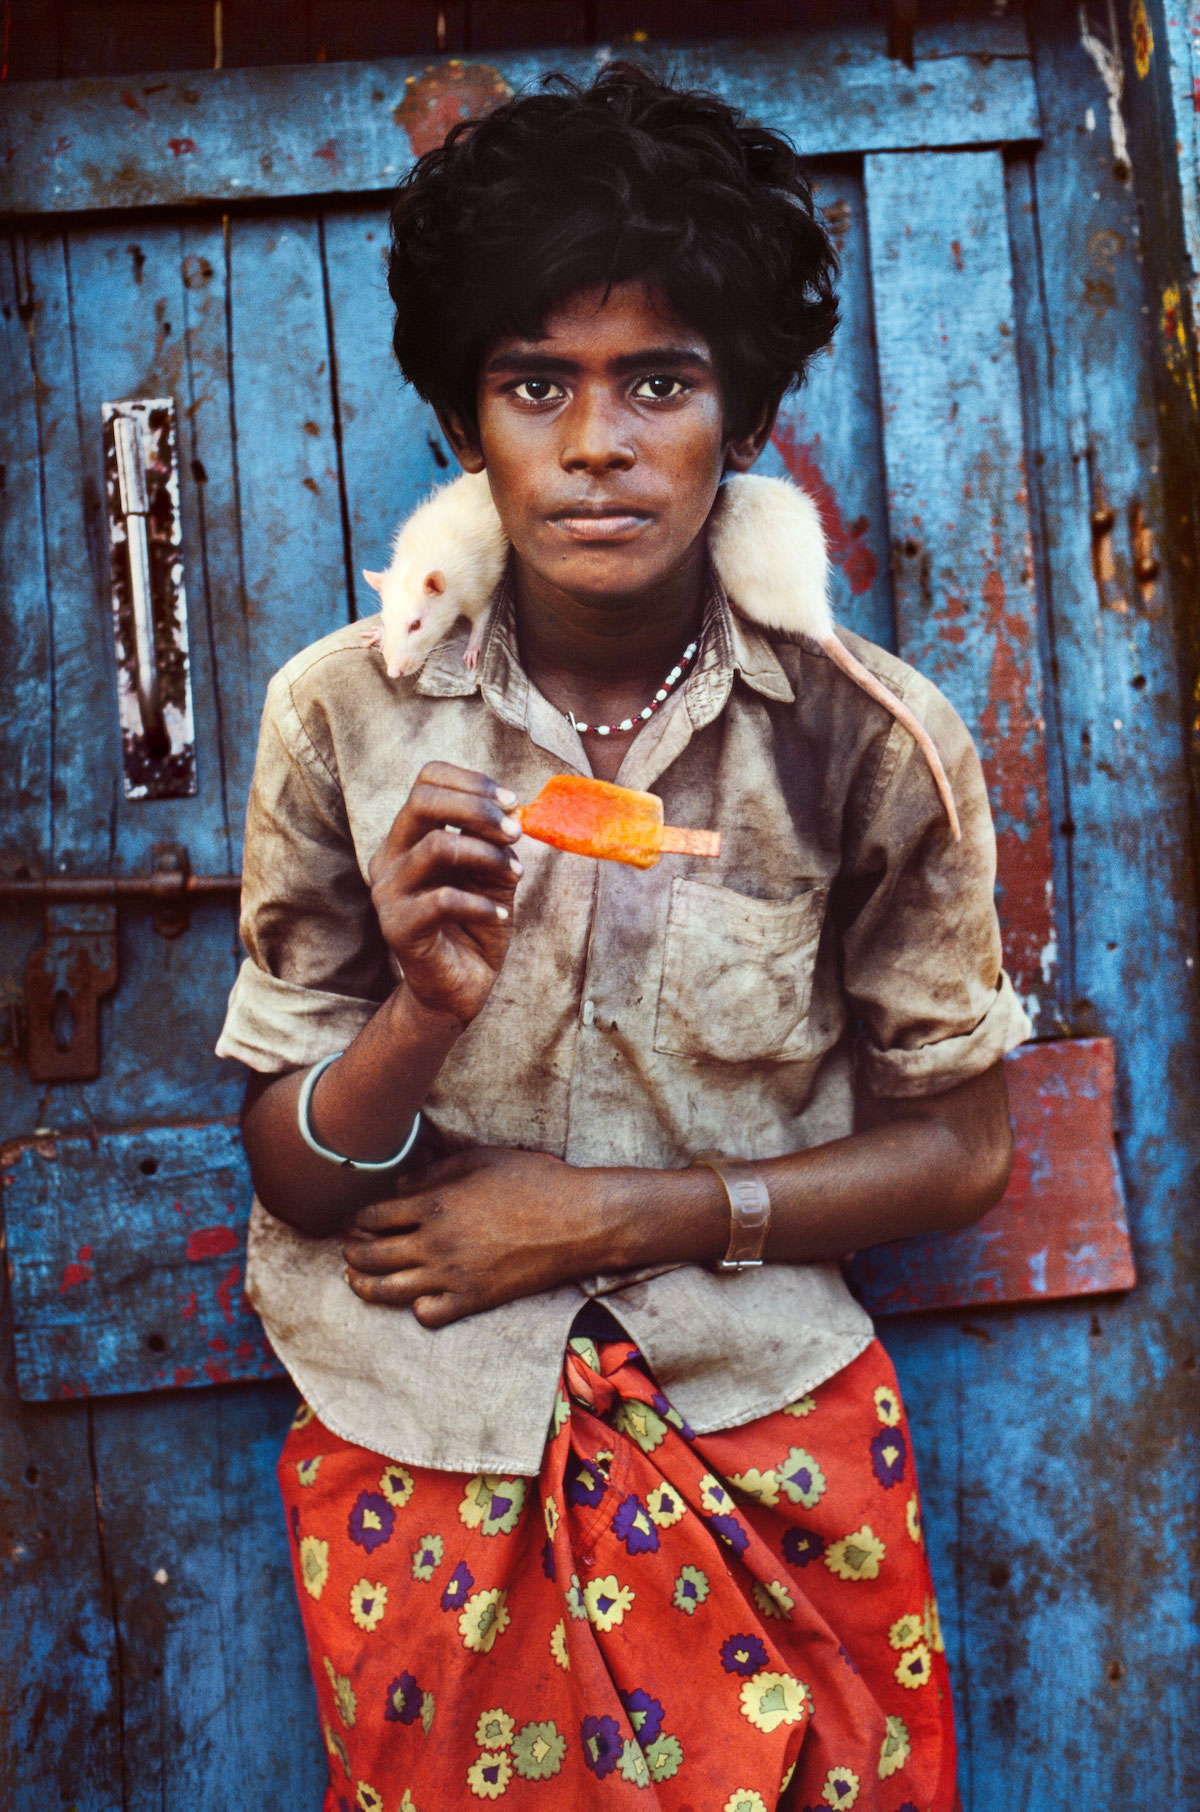 Boy with his Pet Rat in Galapagos by Steve McCurry